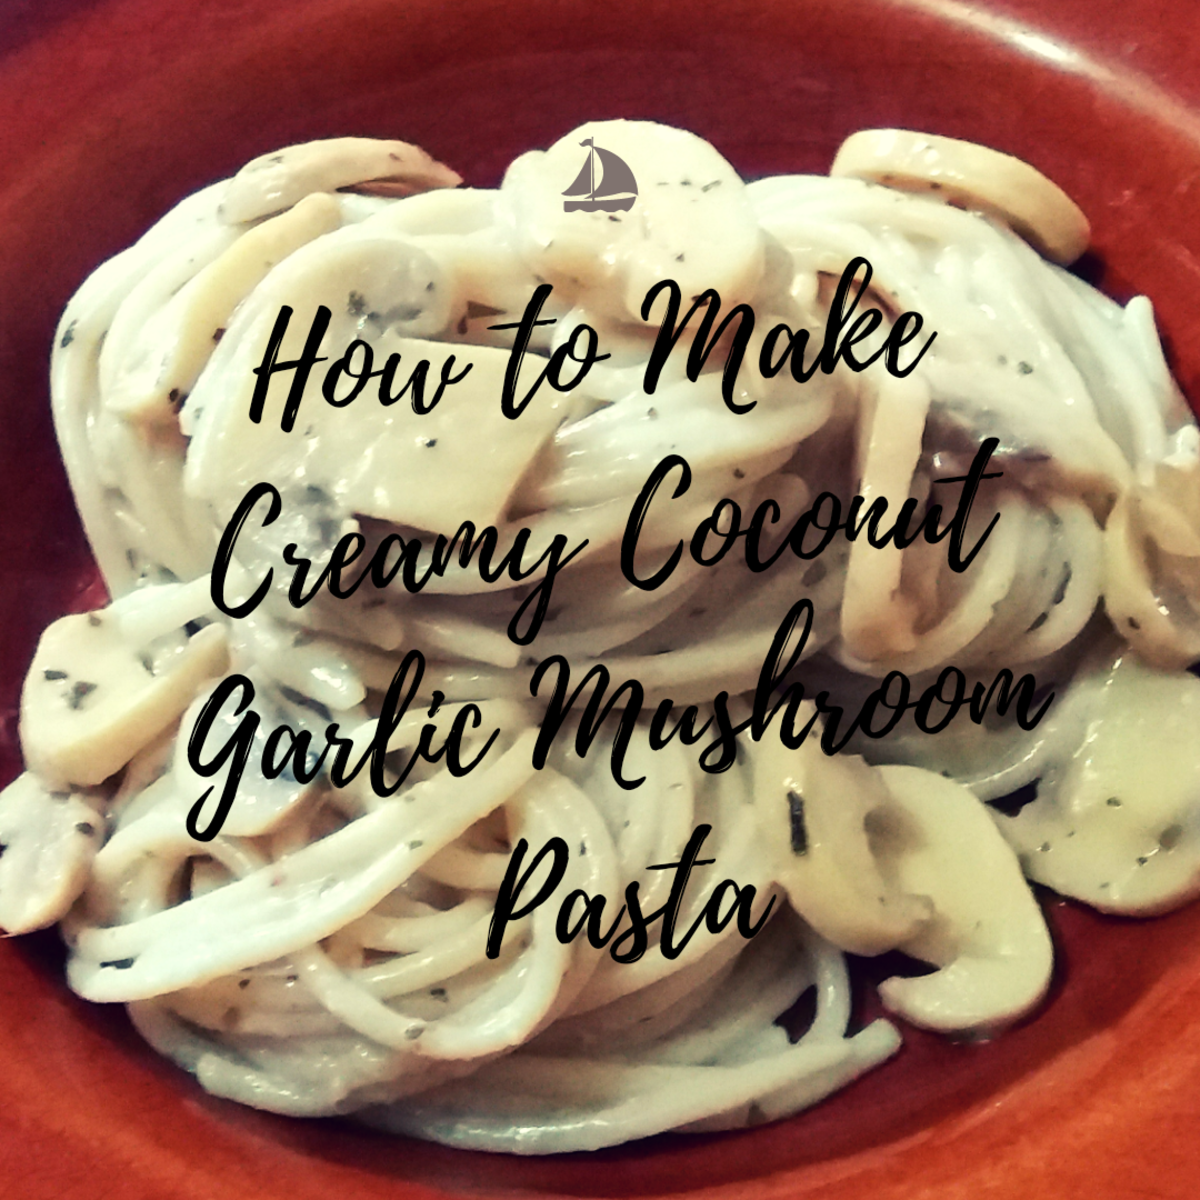 How to Make Creamy Coconut Garlic Mushroom Pasta